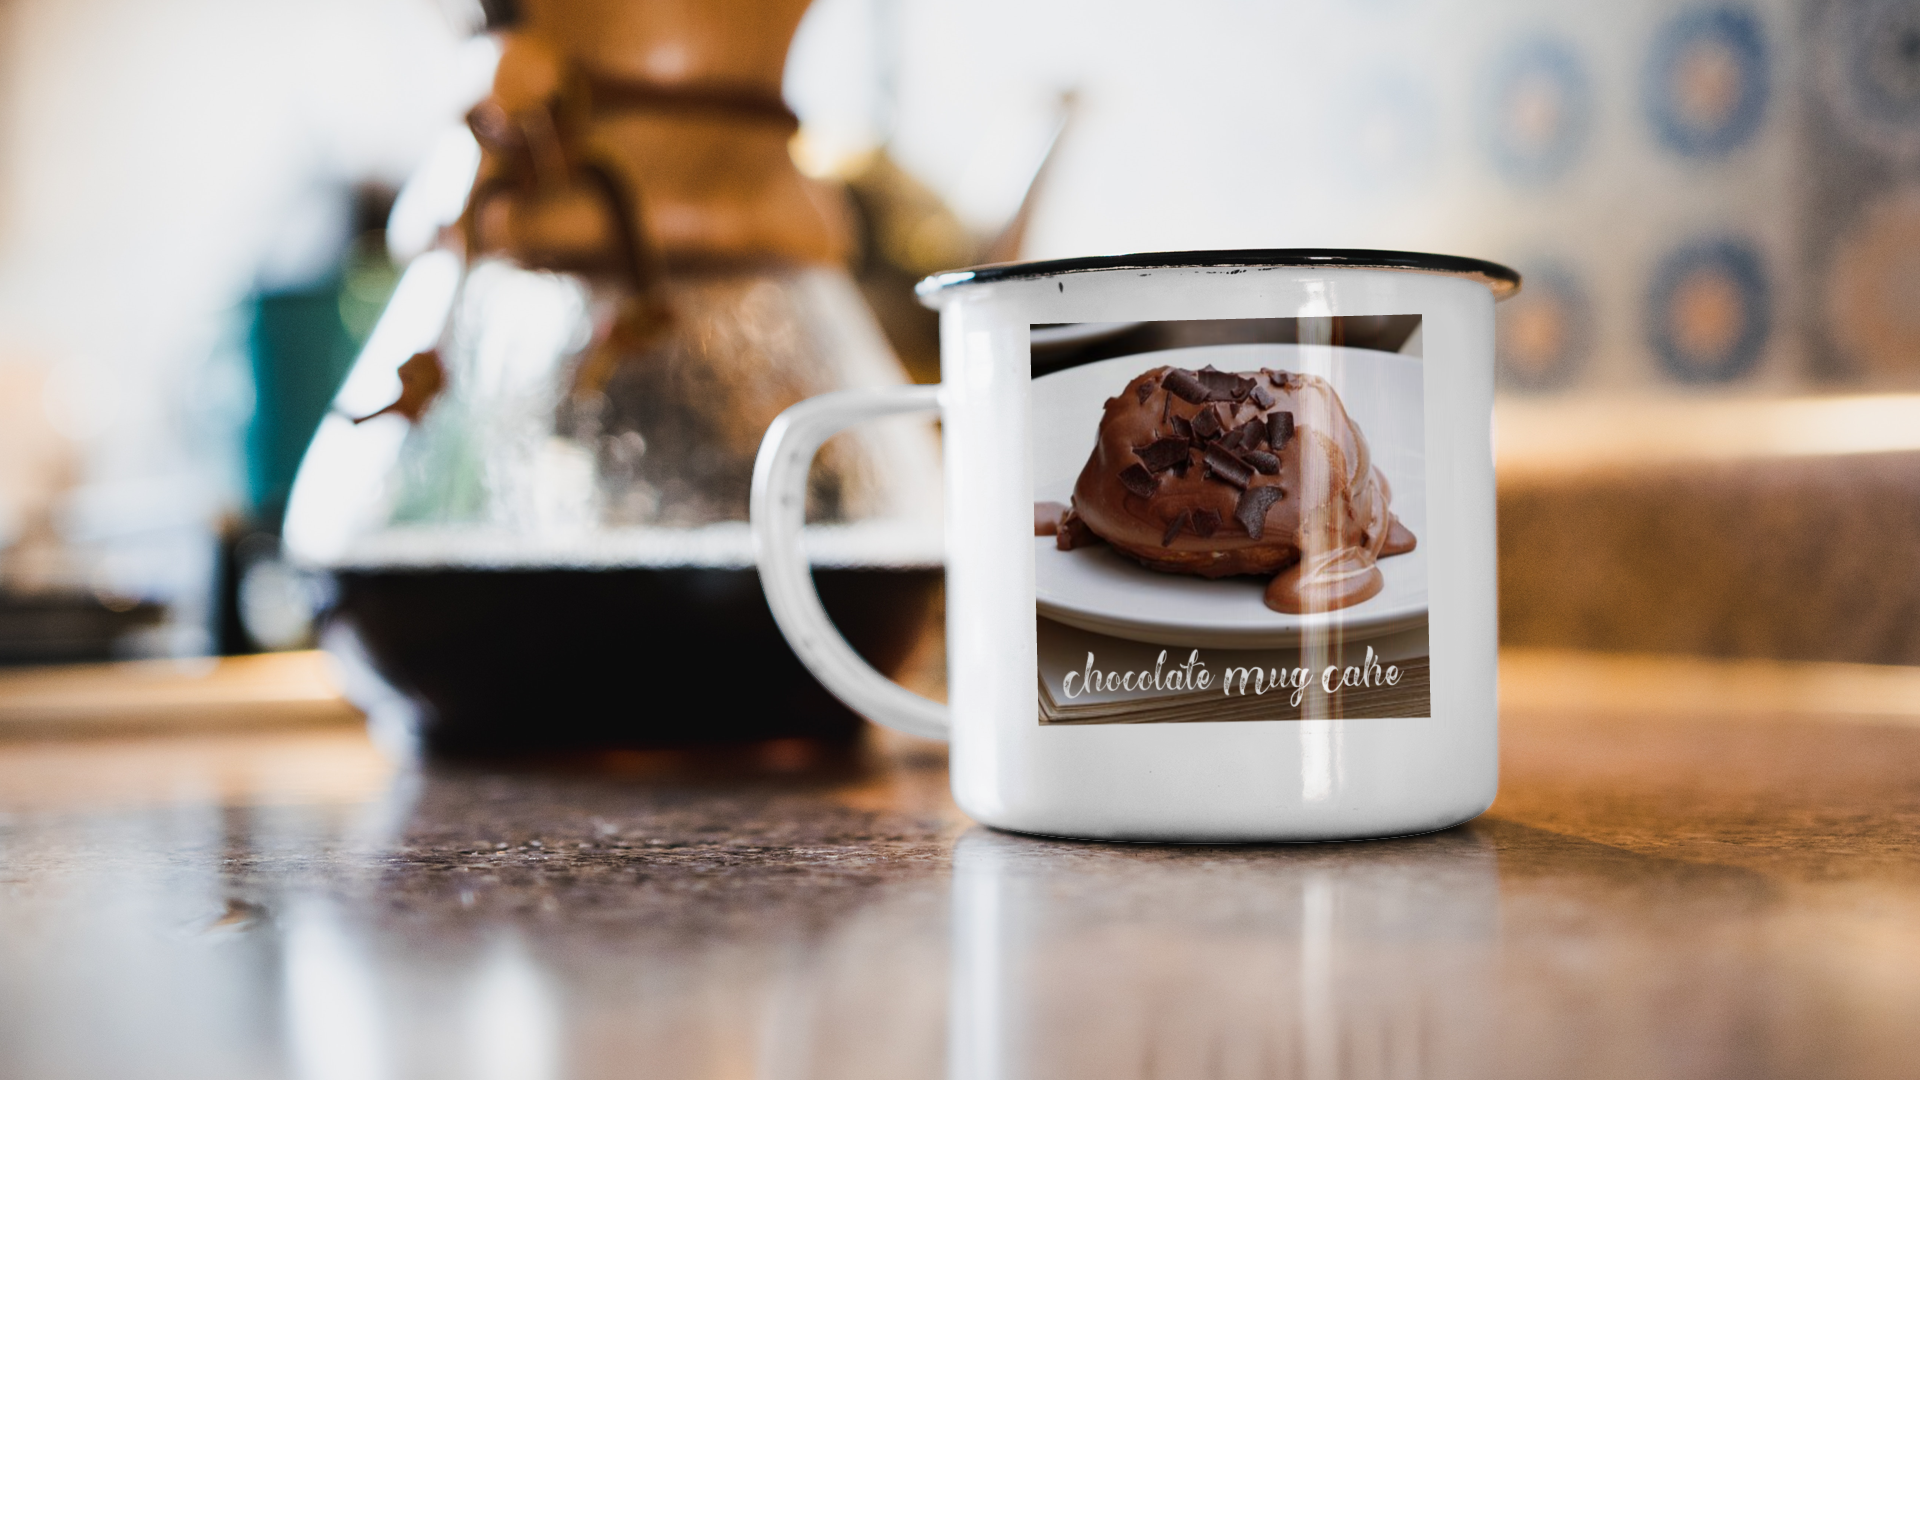 Chocolate mug cake - the most dangerous cake in the world... you want cake, you can have it in 5 minutes flat....